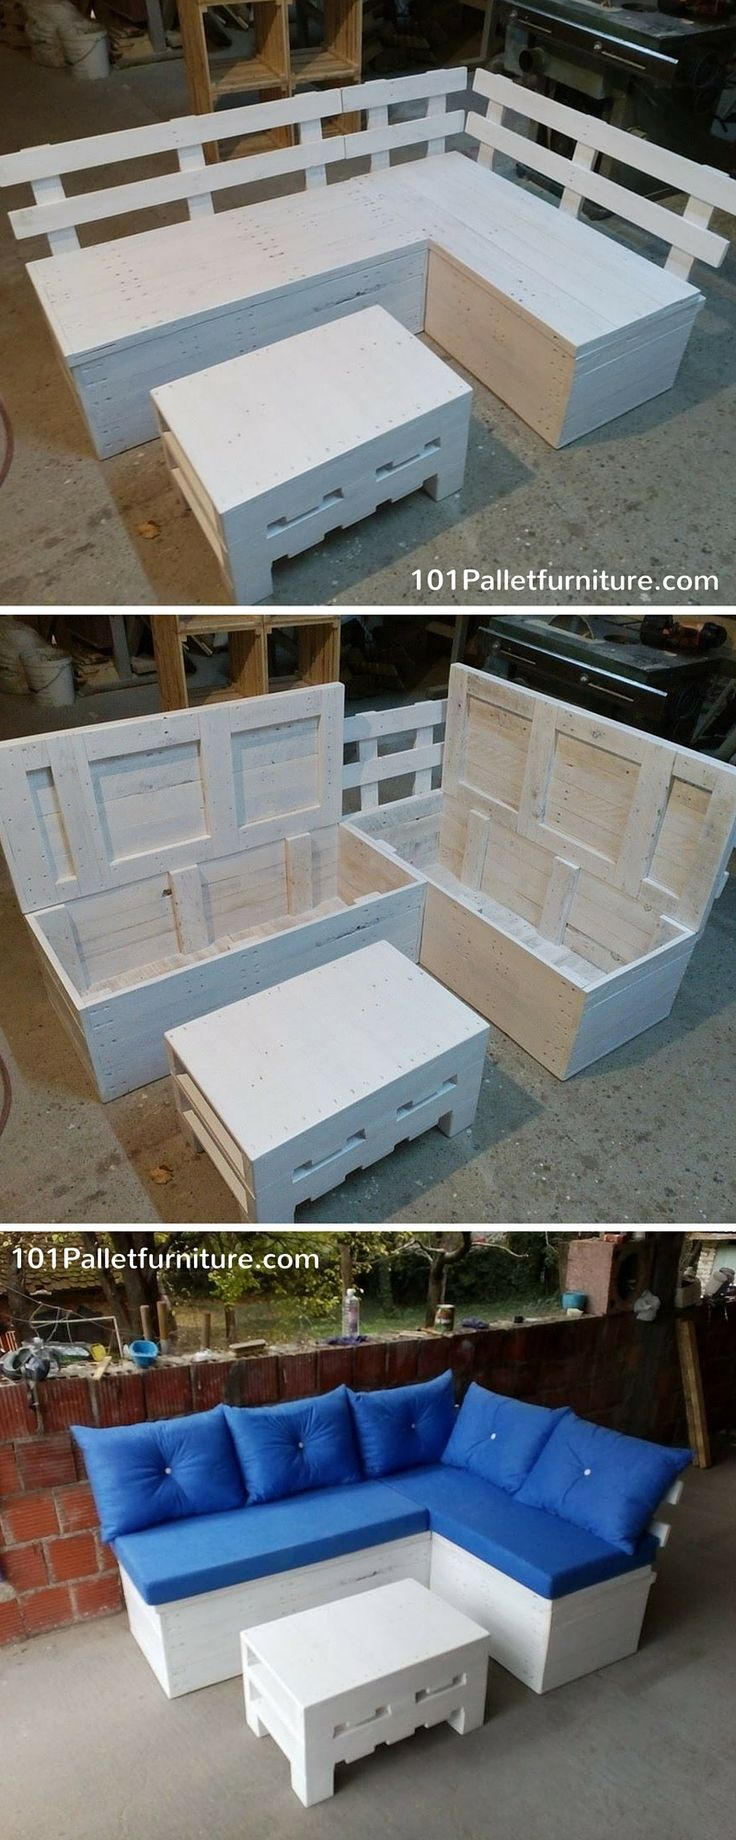 Pallet sectional couch - Best 10 Pallet Sectional Couch Ideas On Pinterest Pallet Sectional Pallet Couch And Sectional Patio Furniture